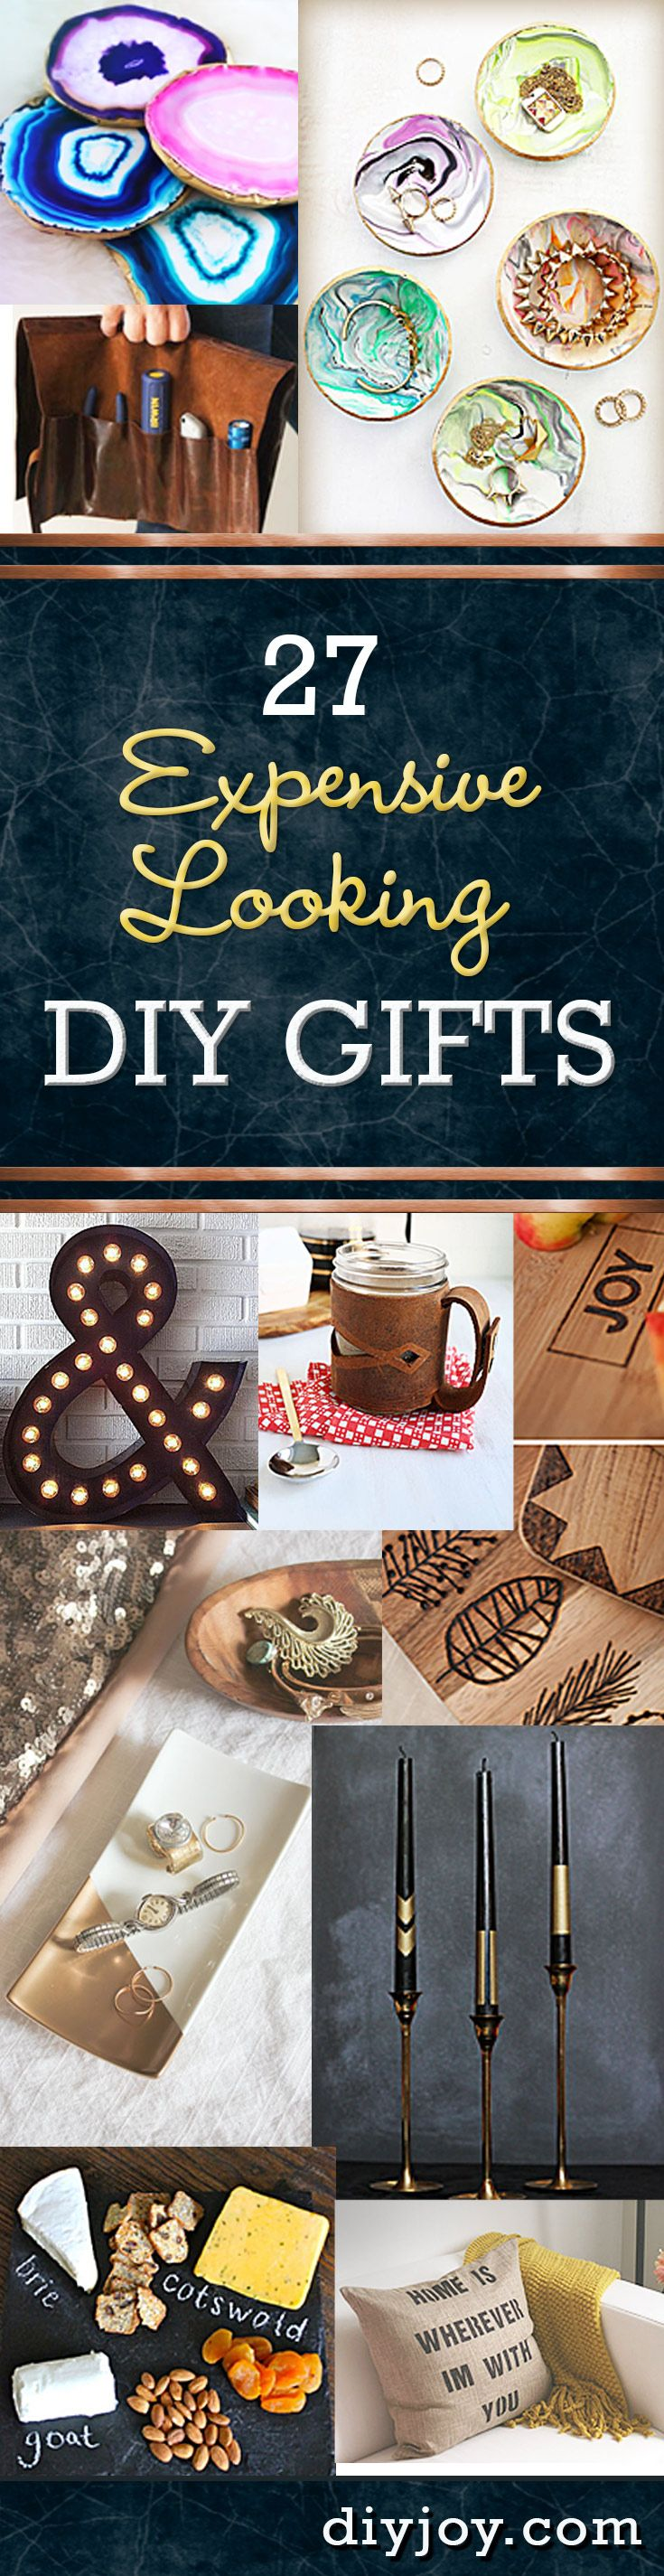 Inexpensive Diy Gifts To Make For Christmas Birthdays Things As I39m About Begin An Expensive Color Mixing Project With Many And Creative Crafts Projects That Cool Gift Ideas Cheap More